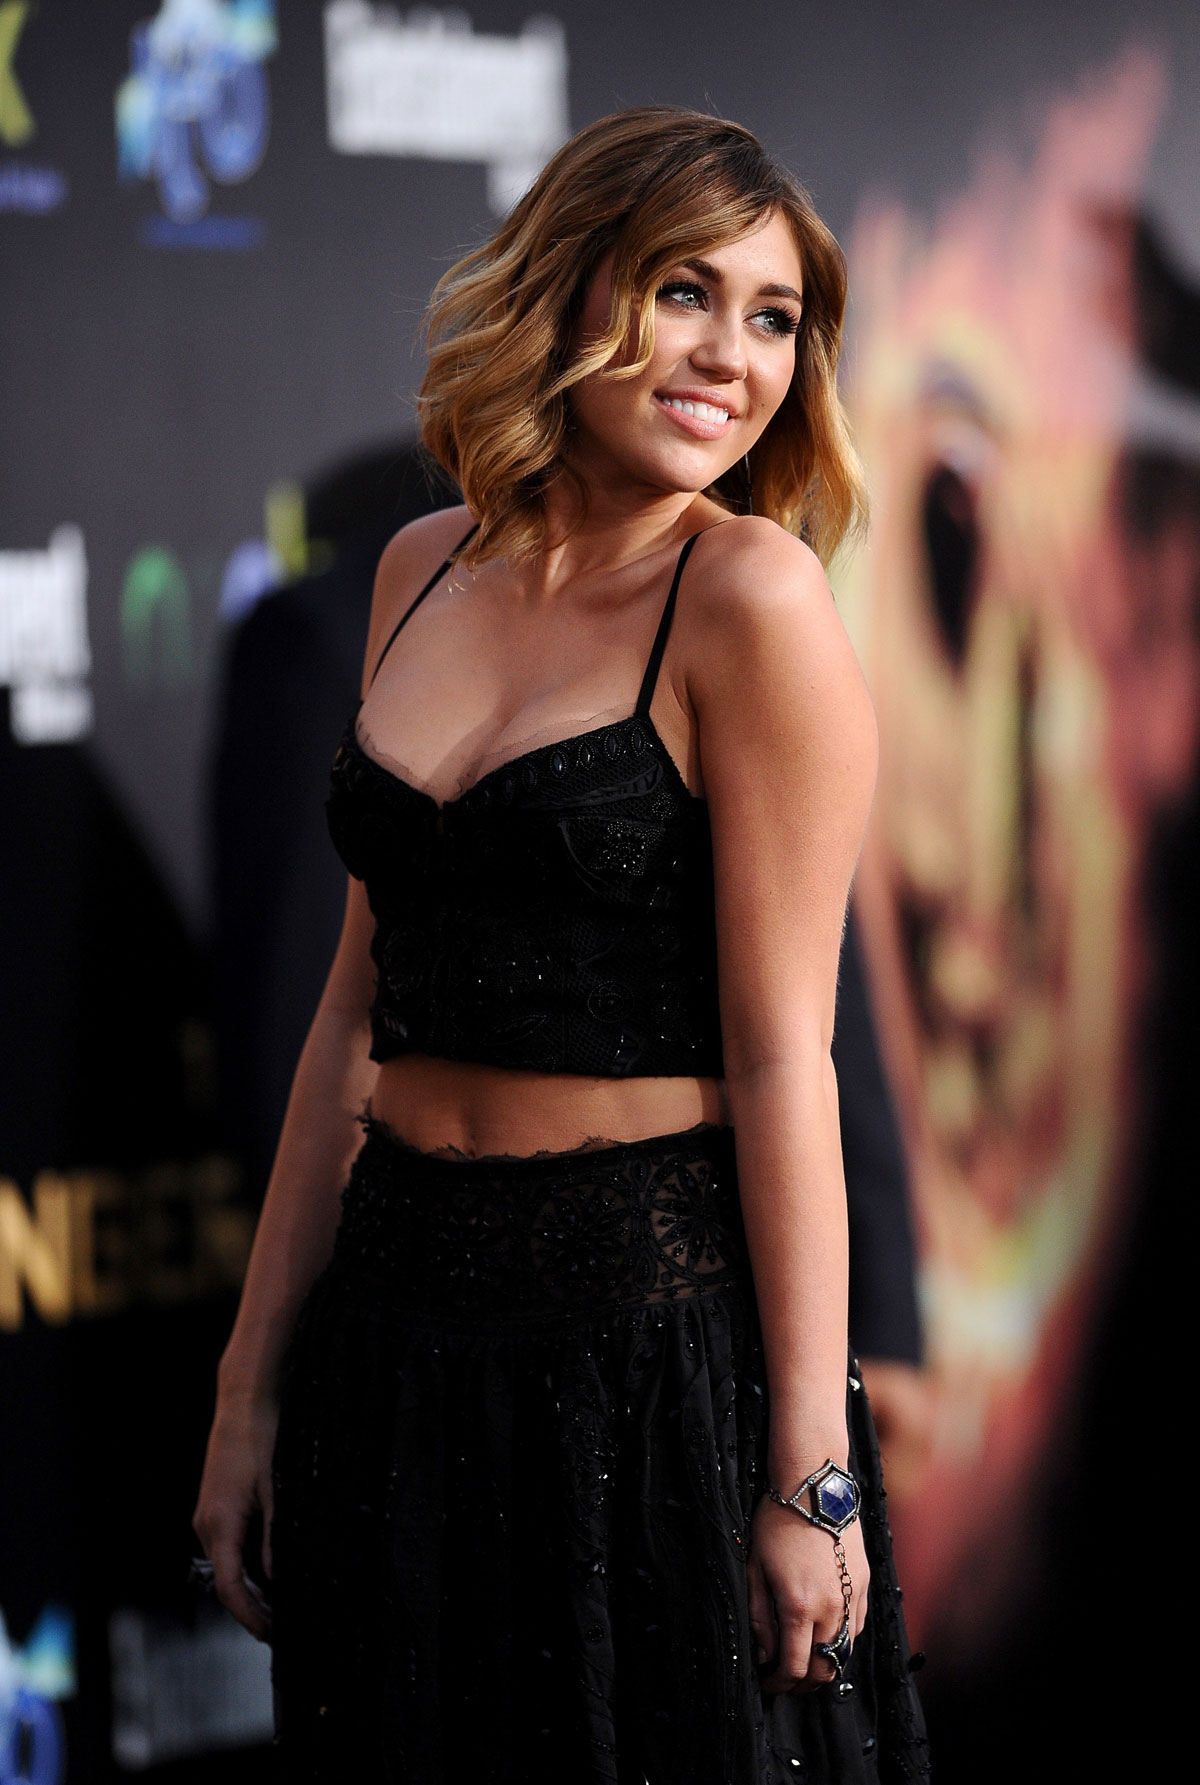 Miley Cyrus At The Hunger Games Premiere In Los Angeles